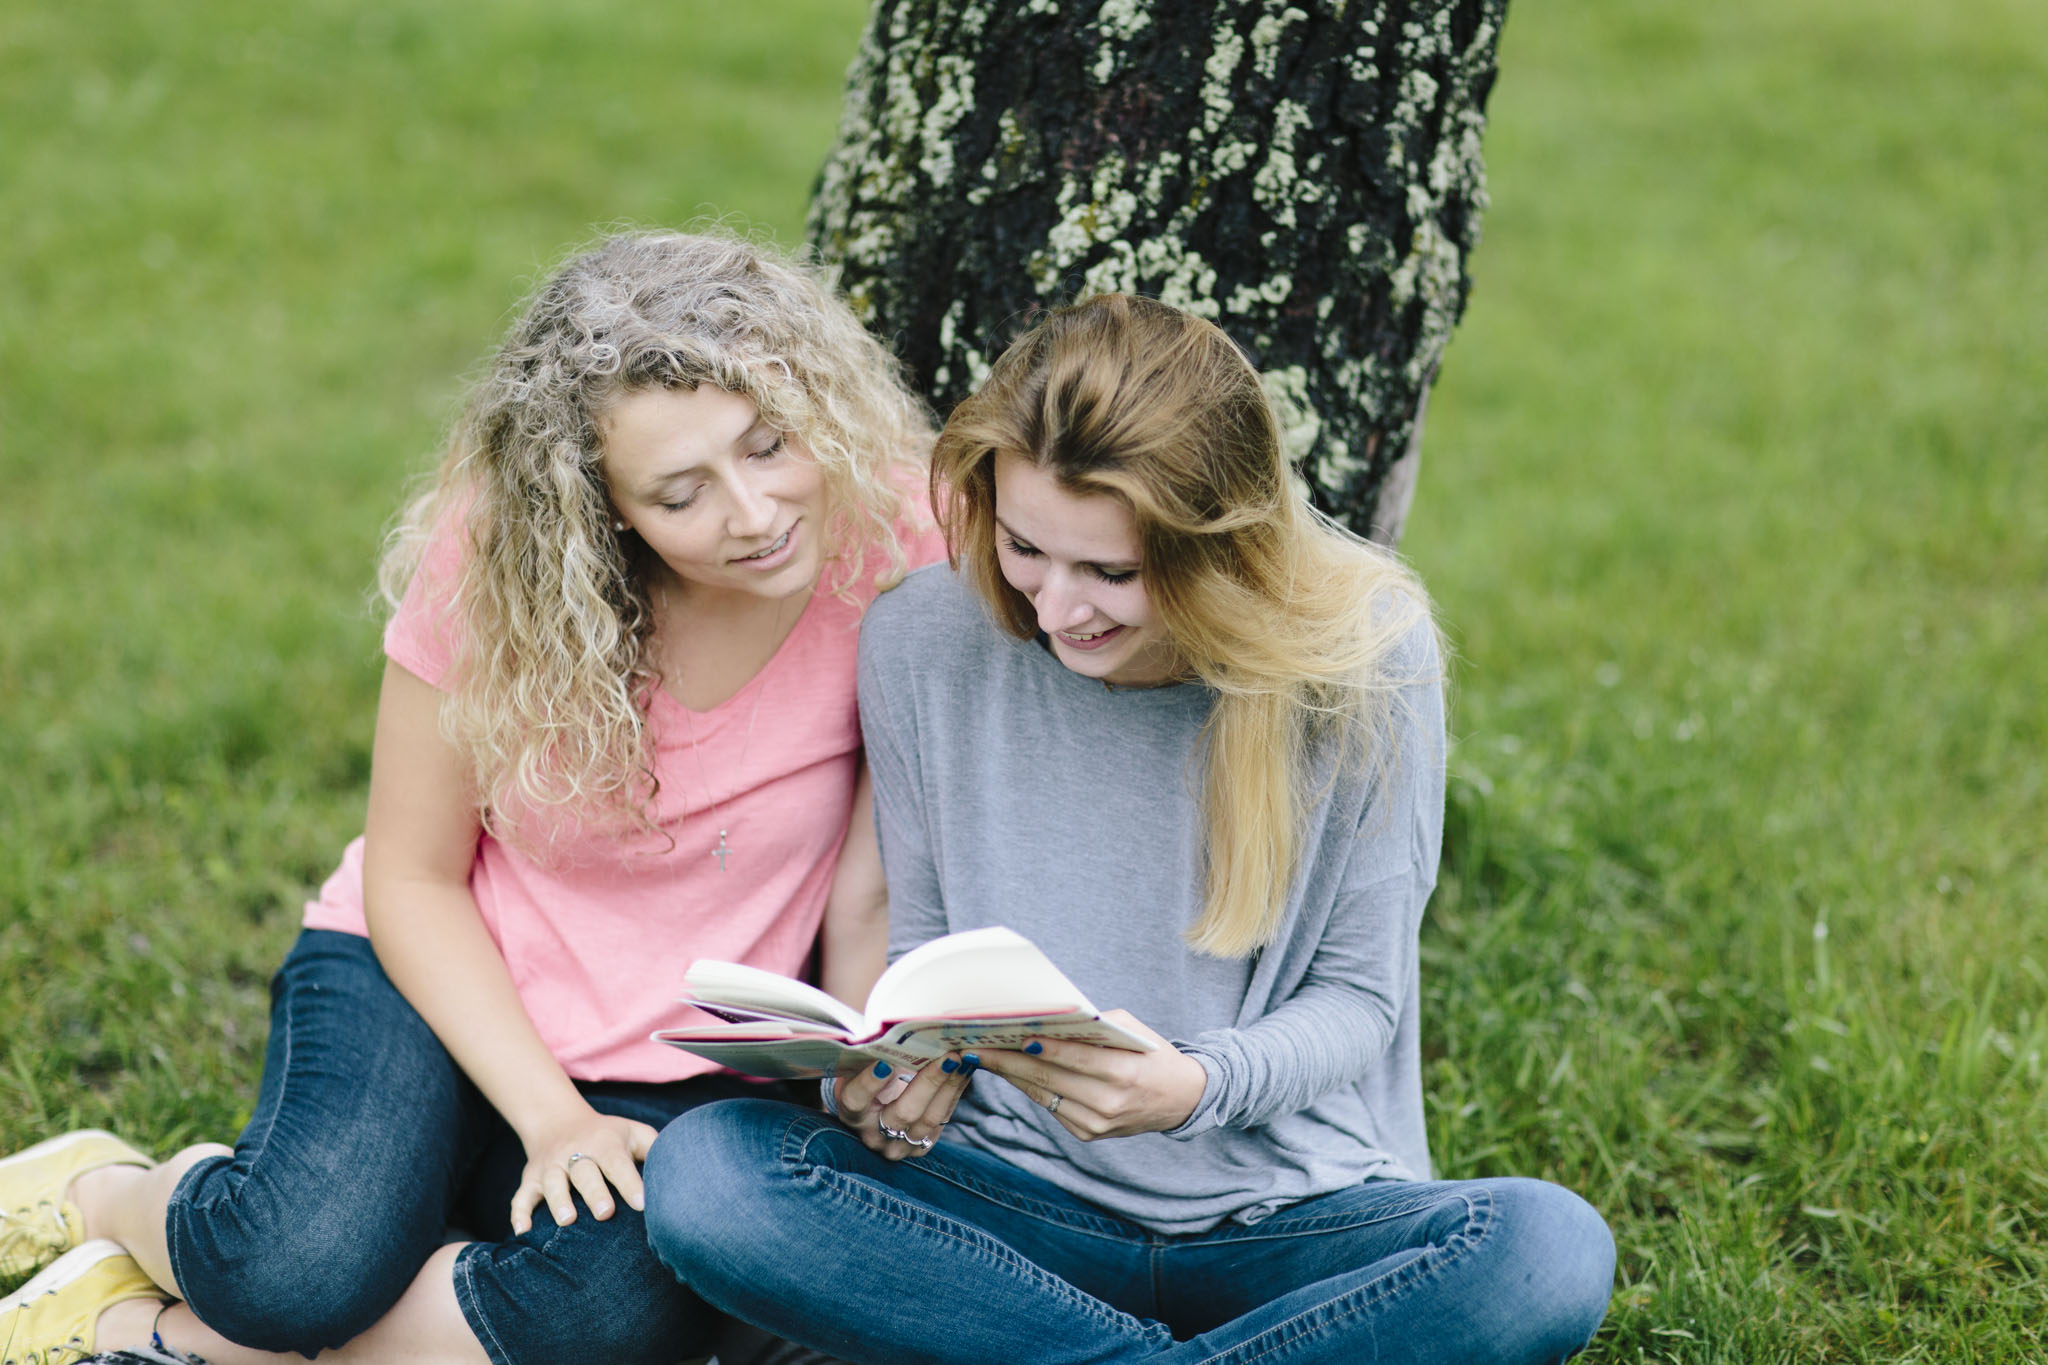 A mentor and teen sit outside and talk about a book they are reading